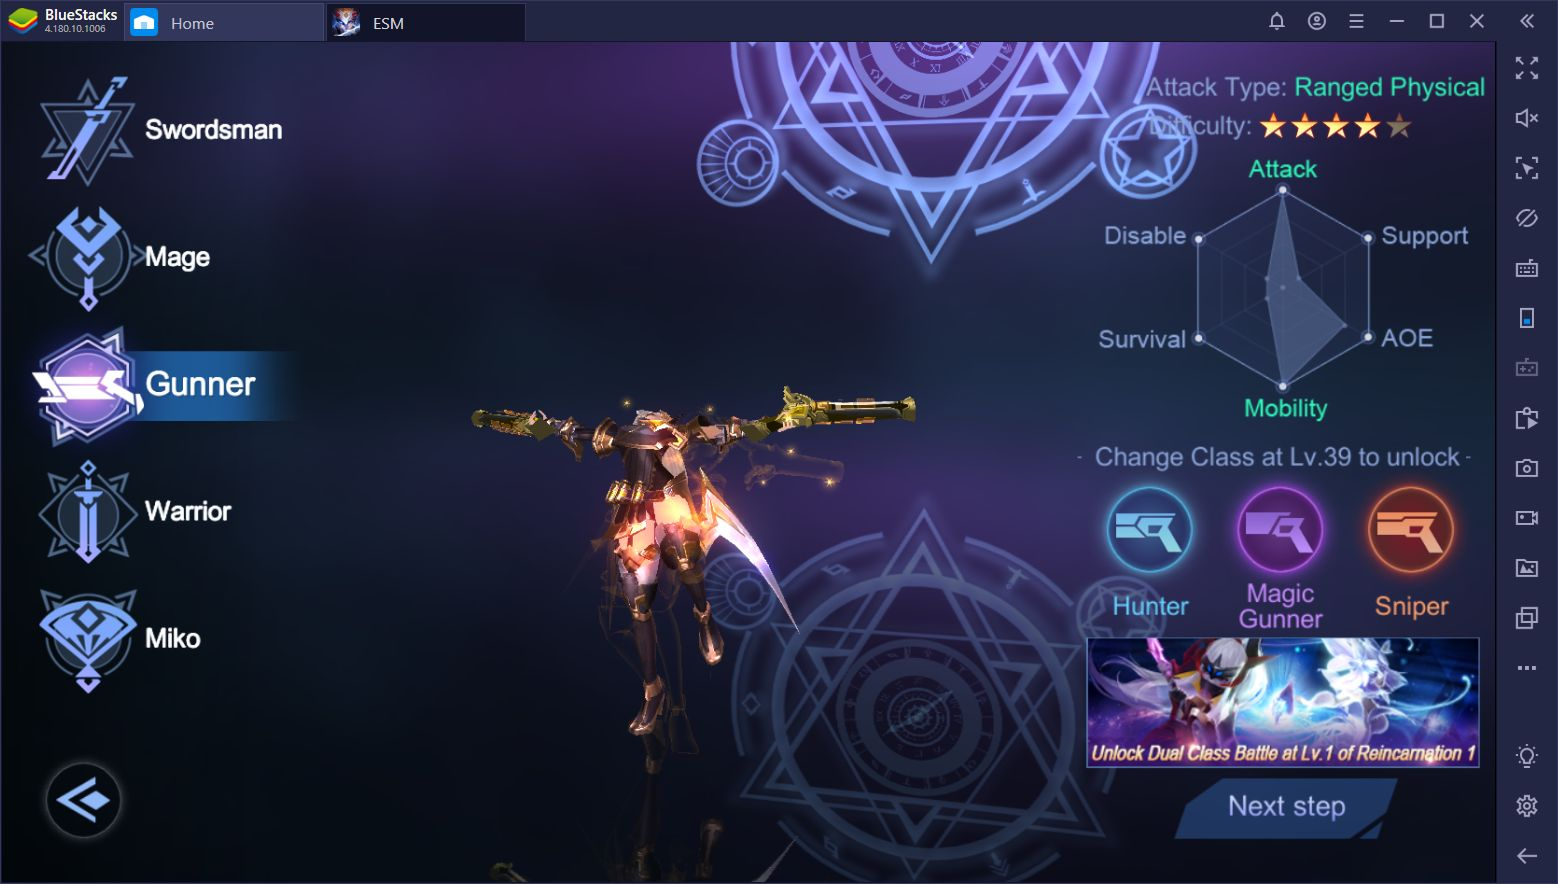 Eternal Sword M on PC - Guide to the Different Classes in the Game